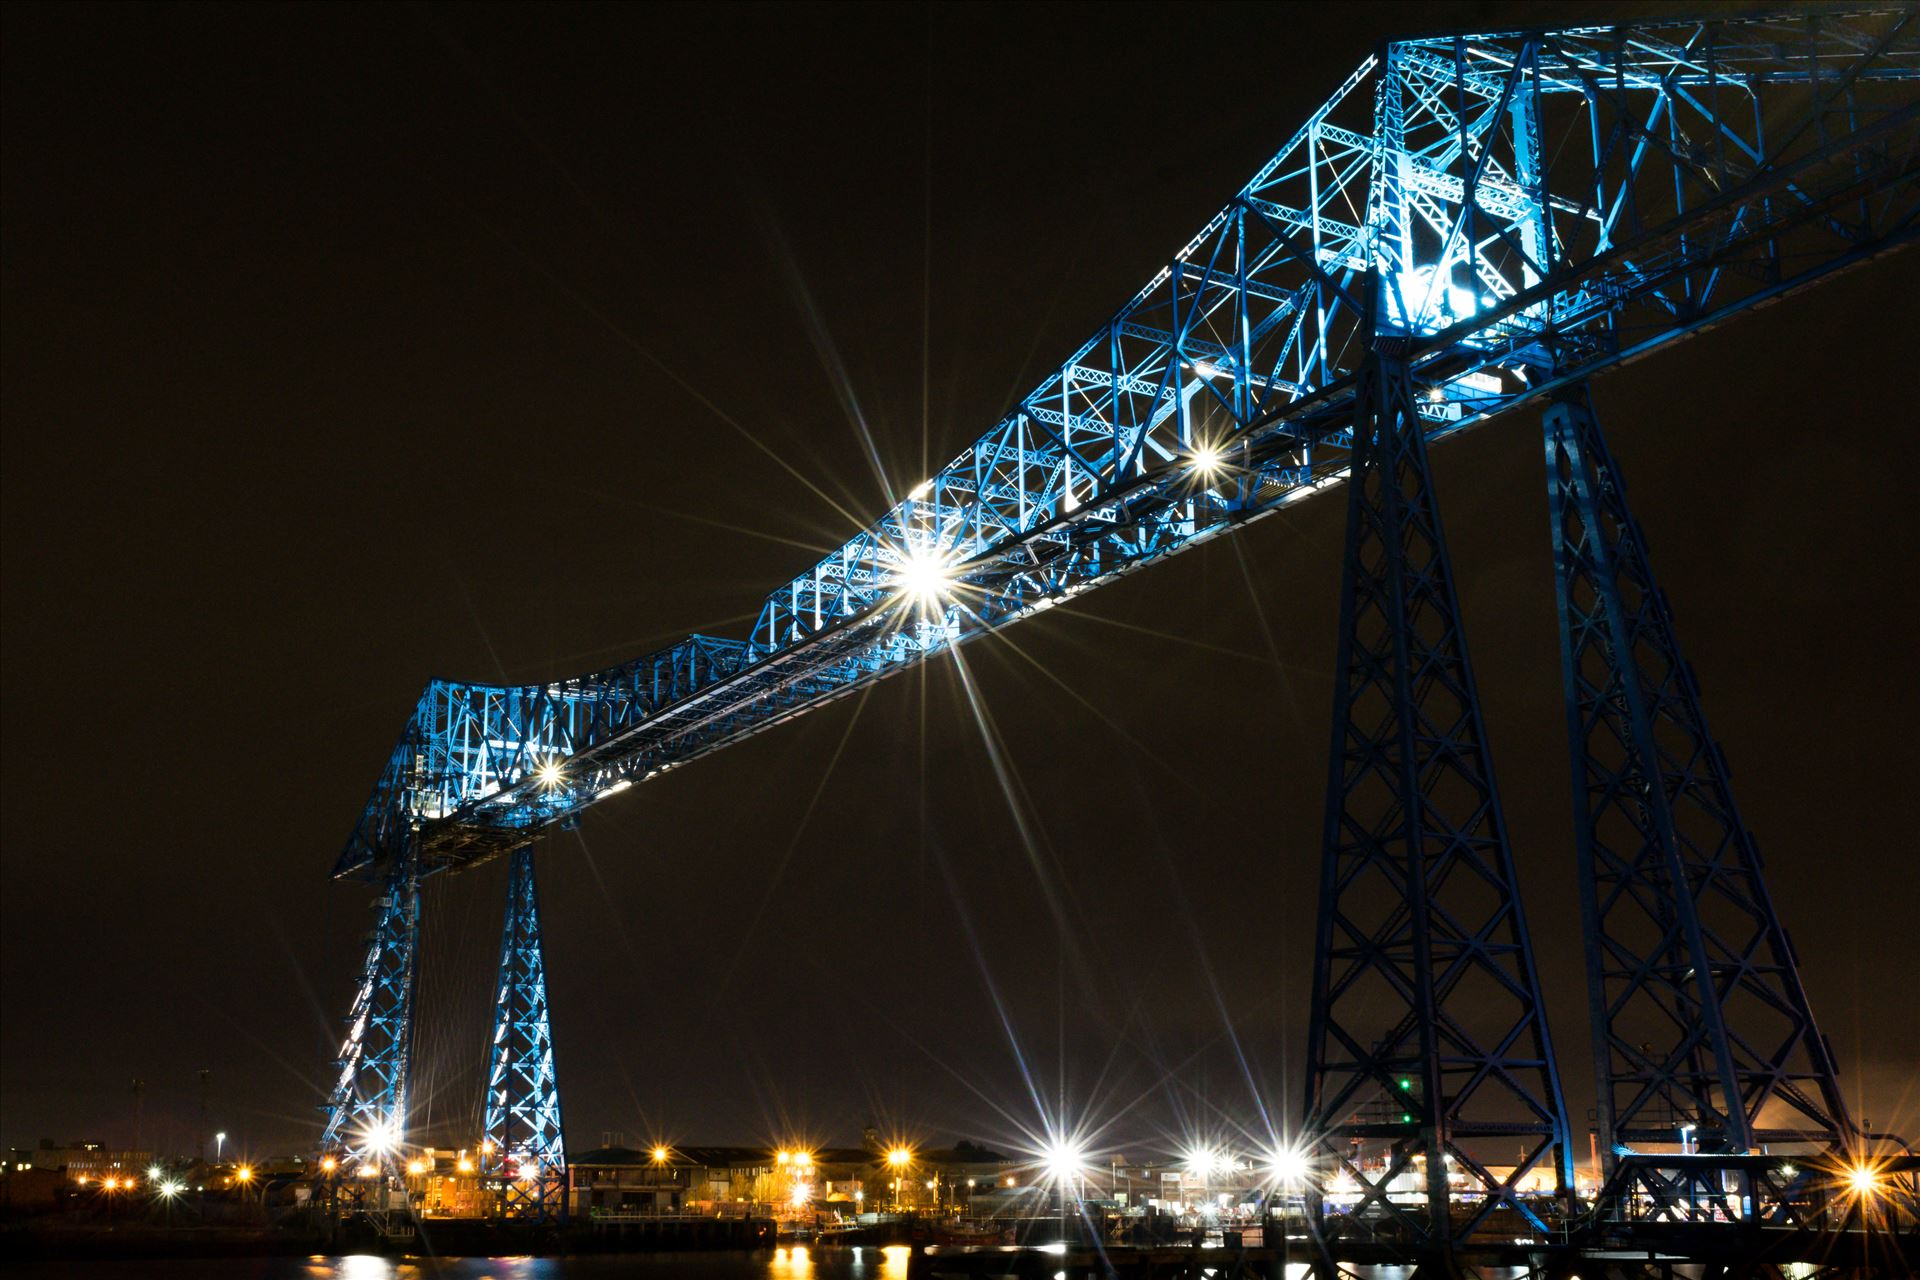 Transporter Bridge Post Clarence At Night - One of the most famous bridges in the Uk The Transporter Bridge at night by AJ Stoves Photography